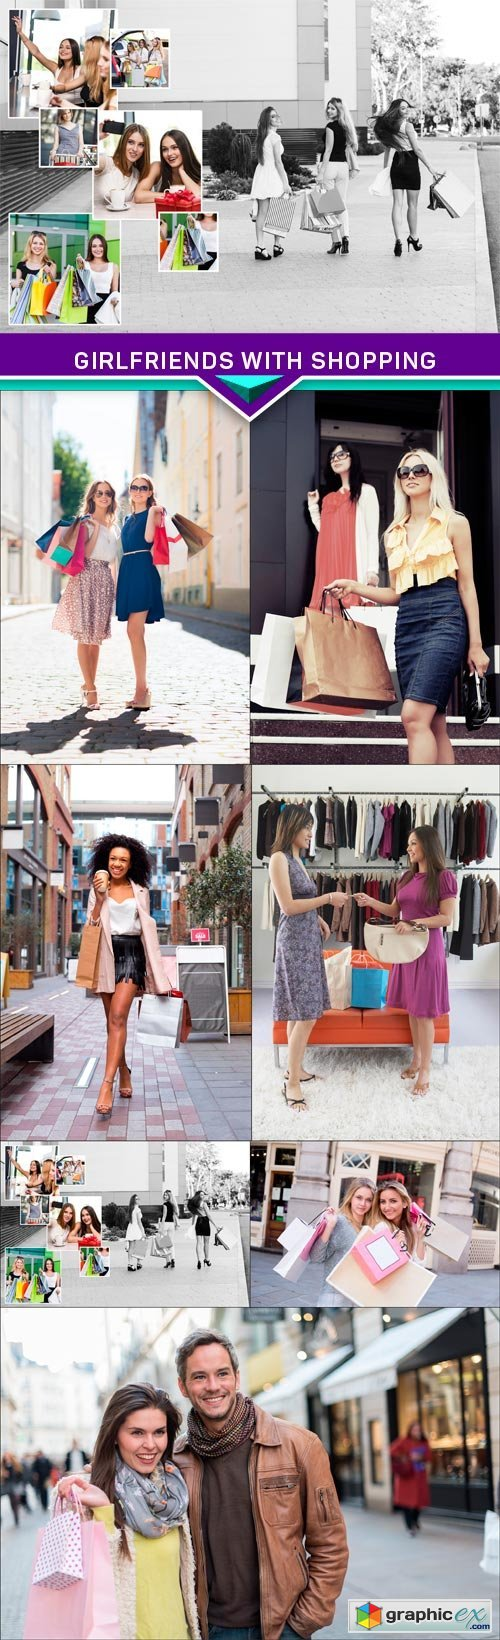 Girlfriends with shopping 7X JPEG